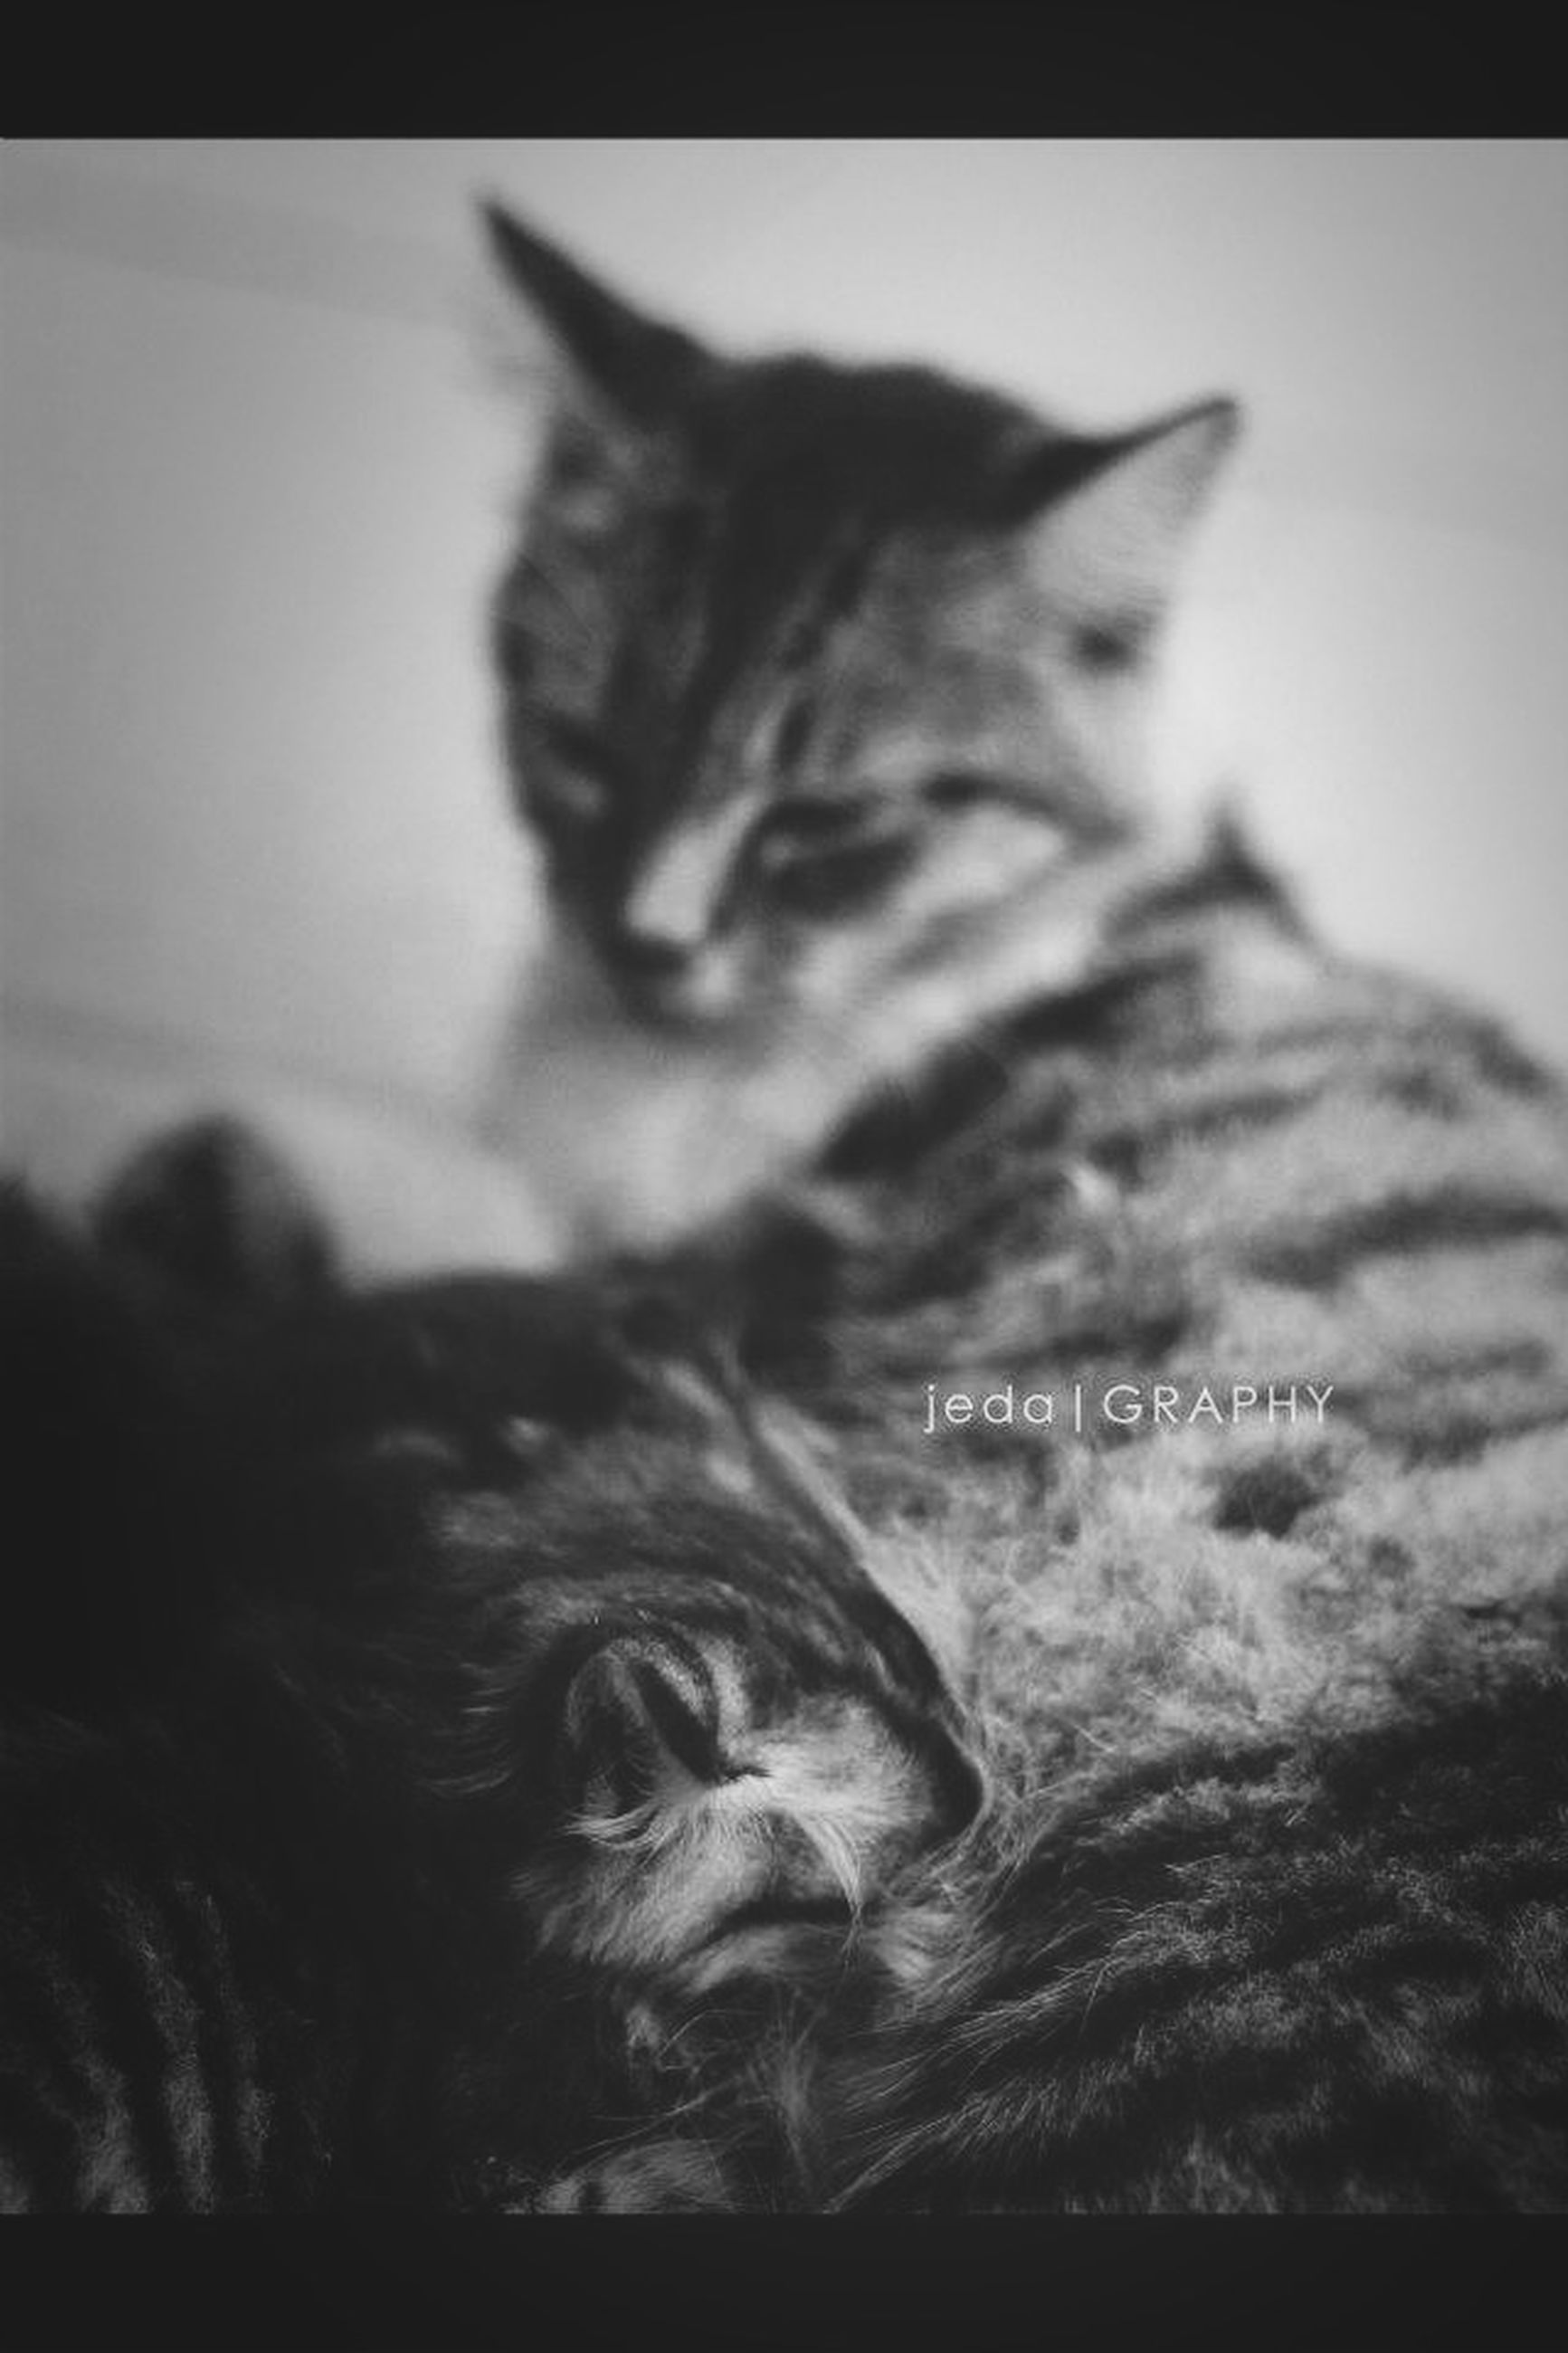 pets, domestic animals, one animal, animal themes, mammal, indoors, domestic cat, cat, dog, relaxation, close-up, feline, animal head, auto post production filter, transfer print, lying down, whisker, resting, selective focus, portrait